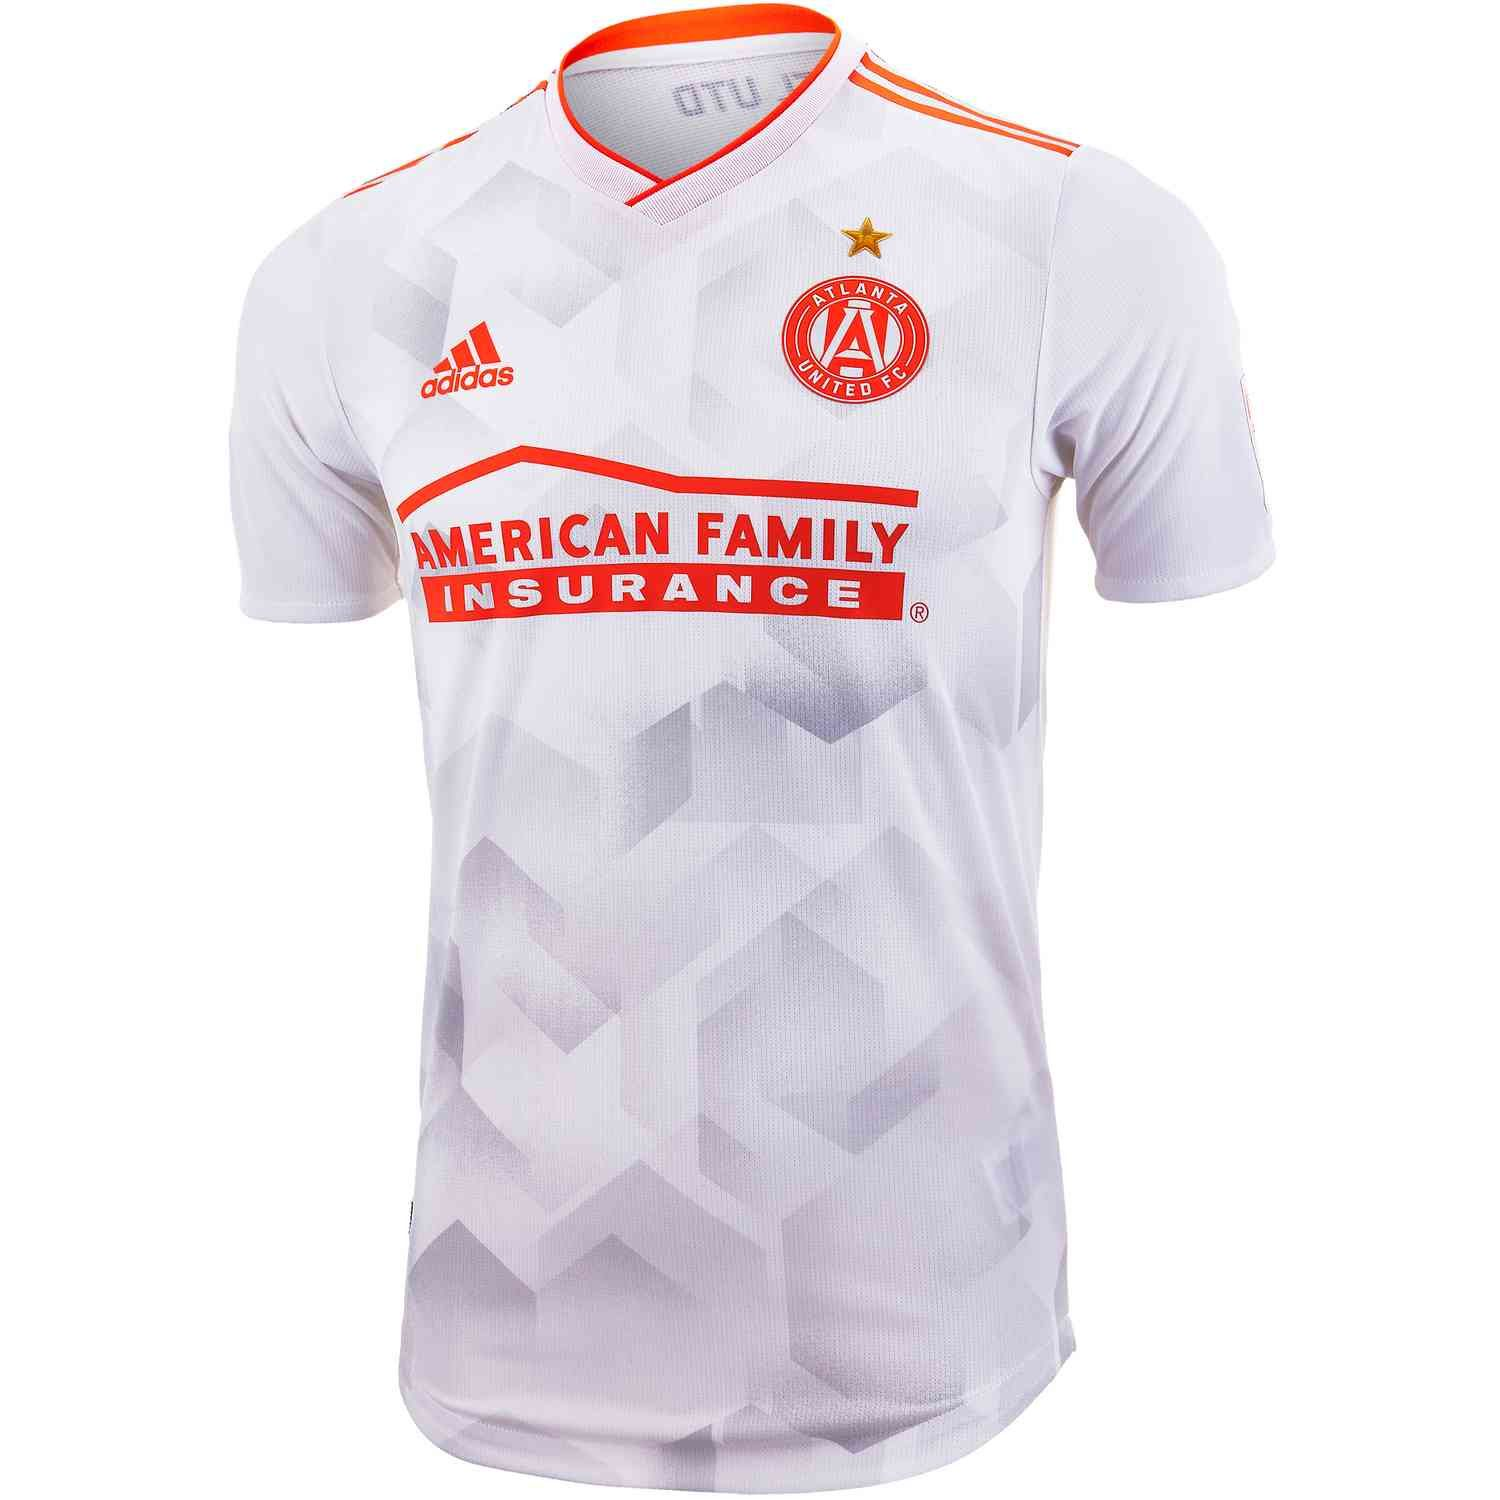 2019 Adidas Atlanta United Away Authentic Jersey Jersey Adidas Soccer Jersey